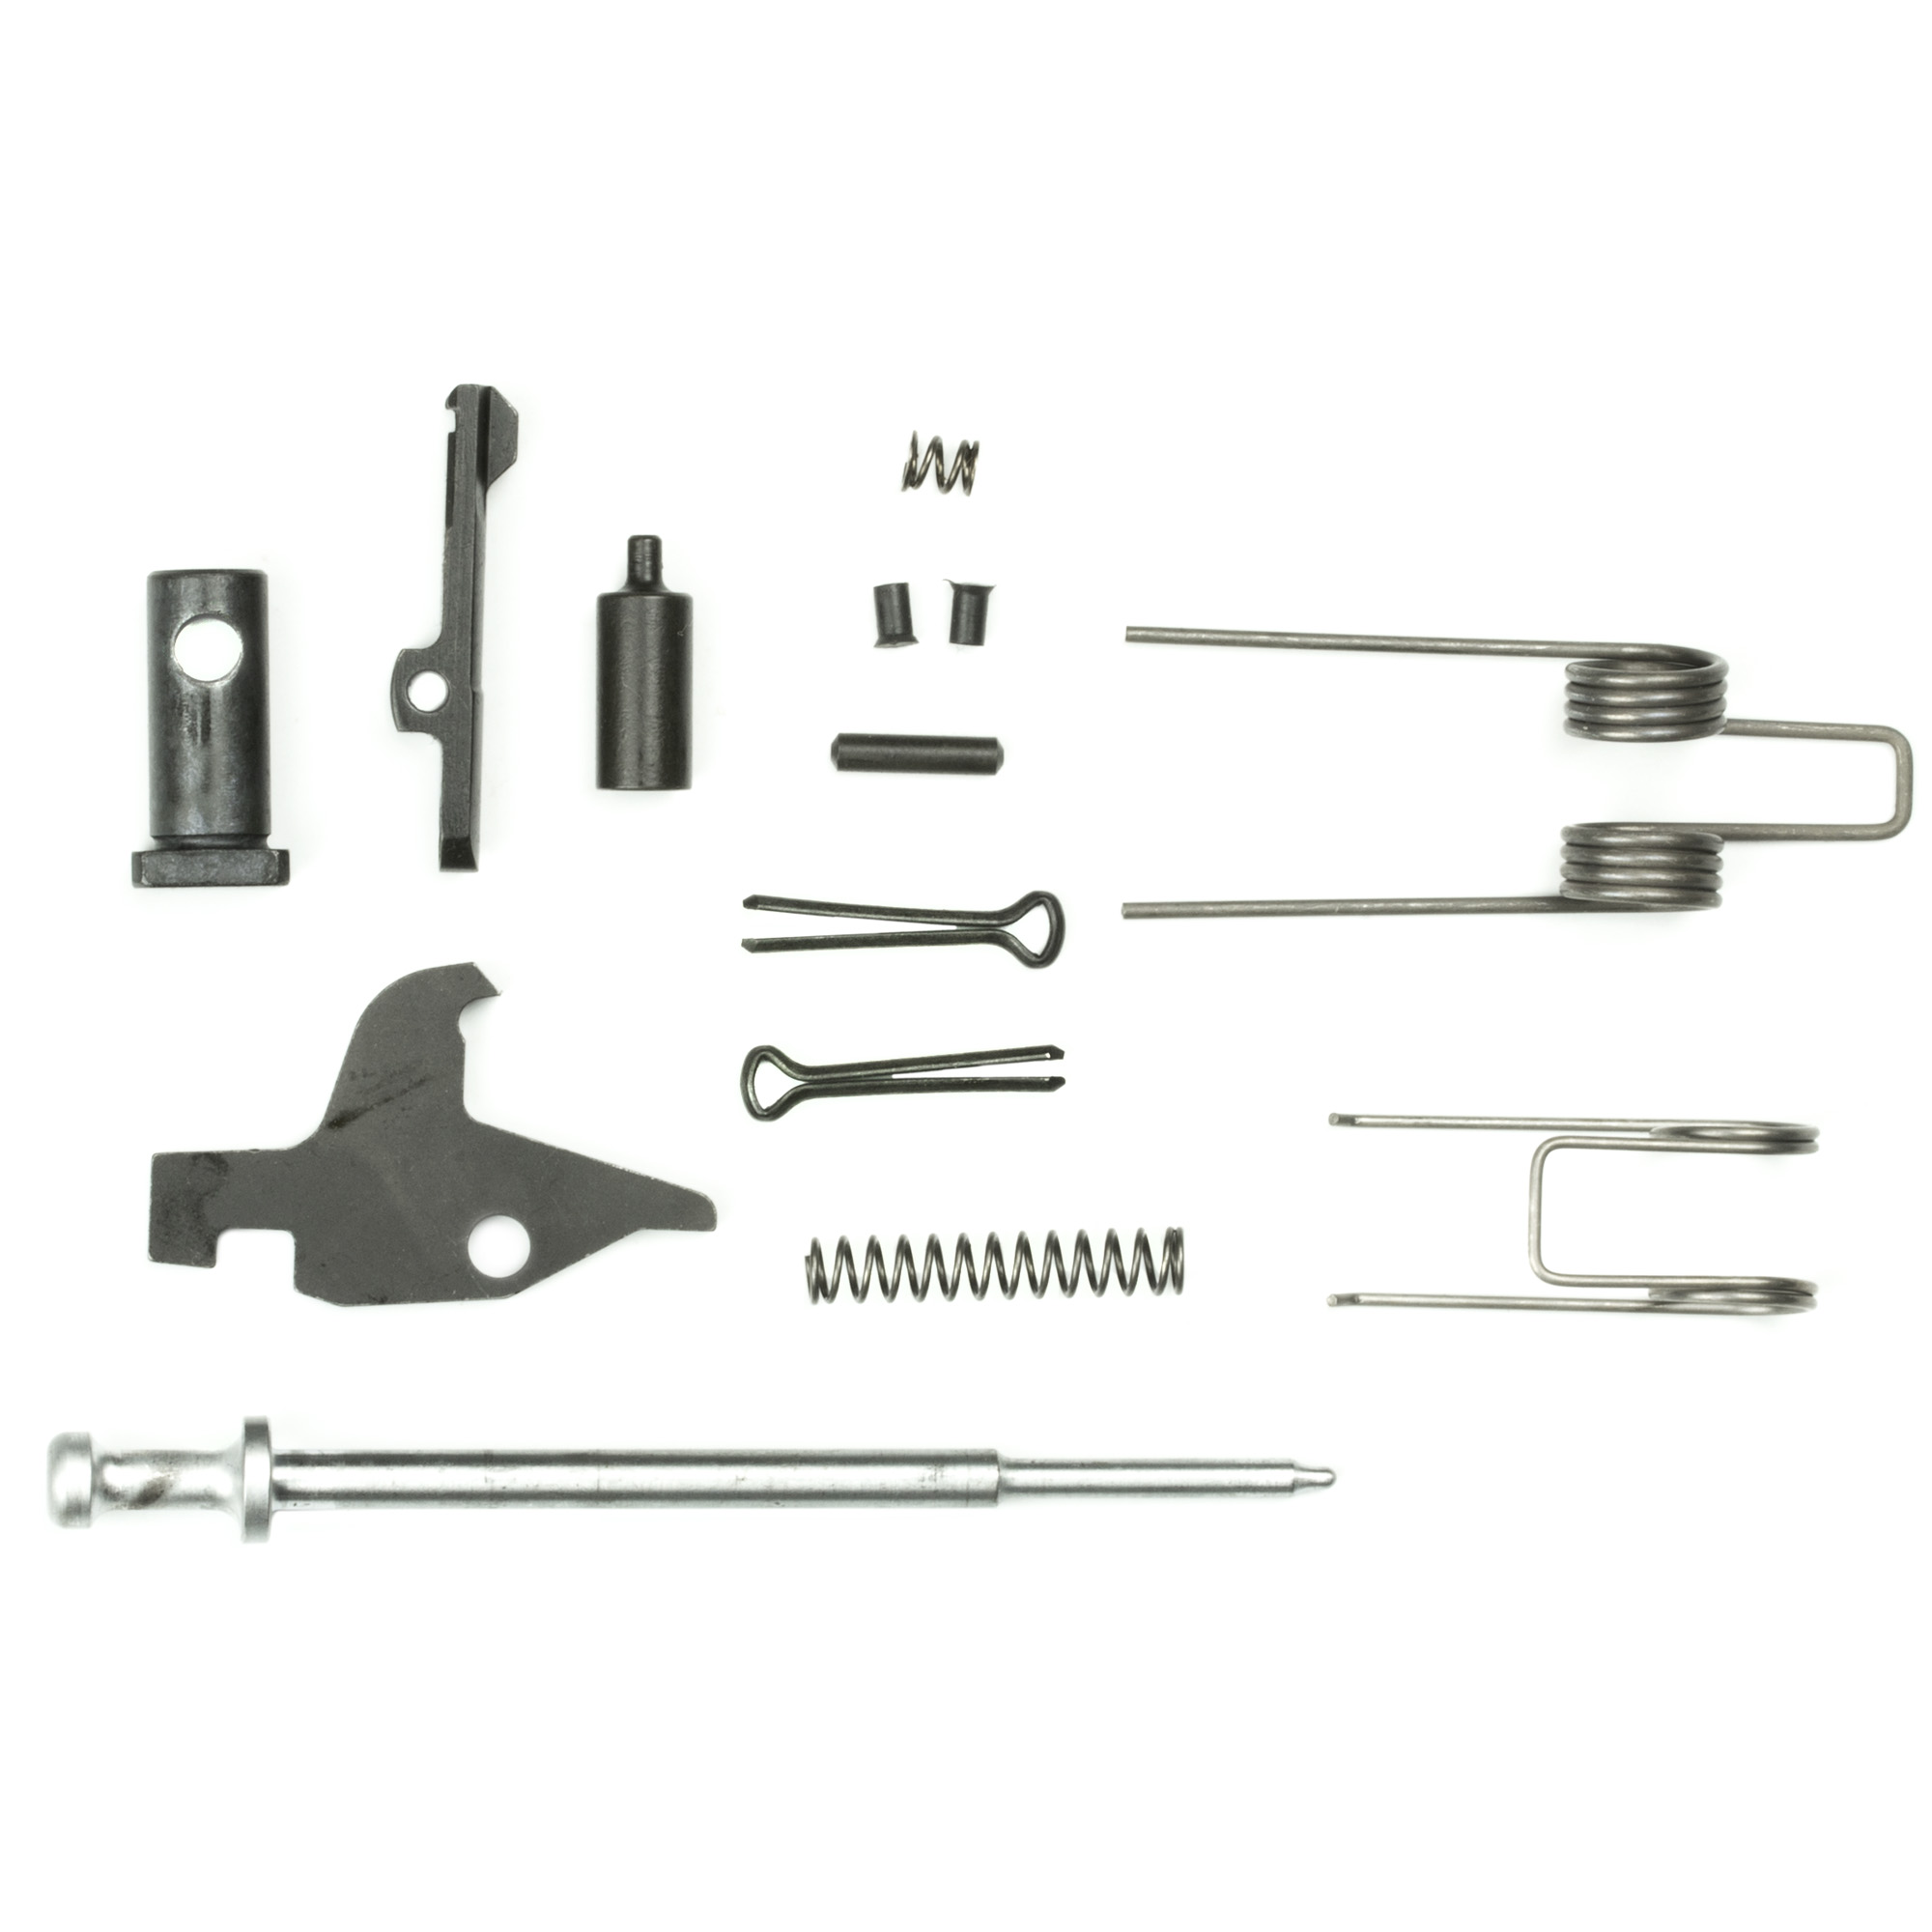 The field repair kit was designed to provide the most commonly worn or broken parts in your semi auto AR15. It's a great addition to your range bag! All parts are high quality.